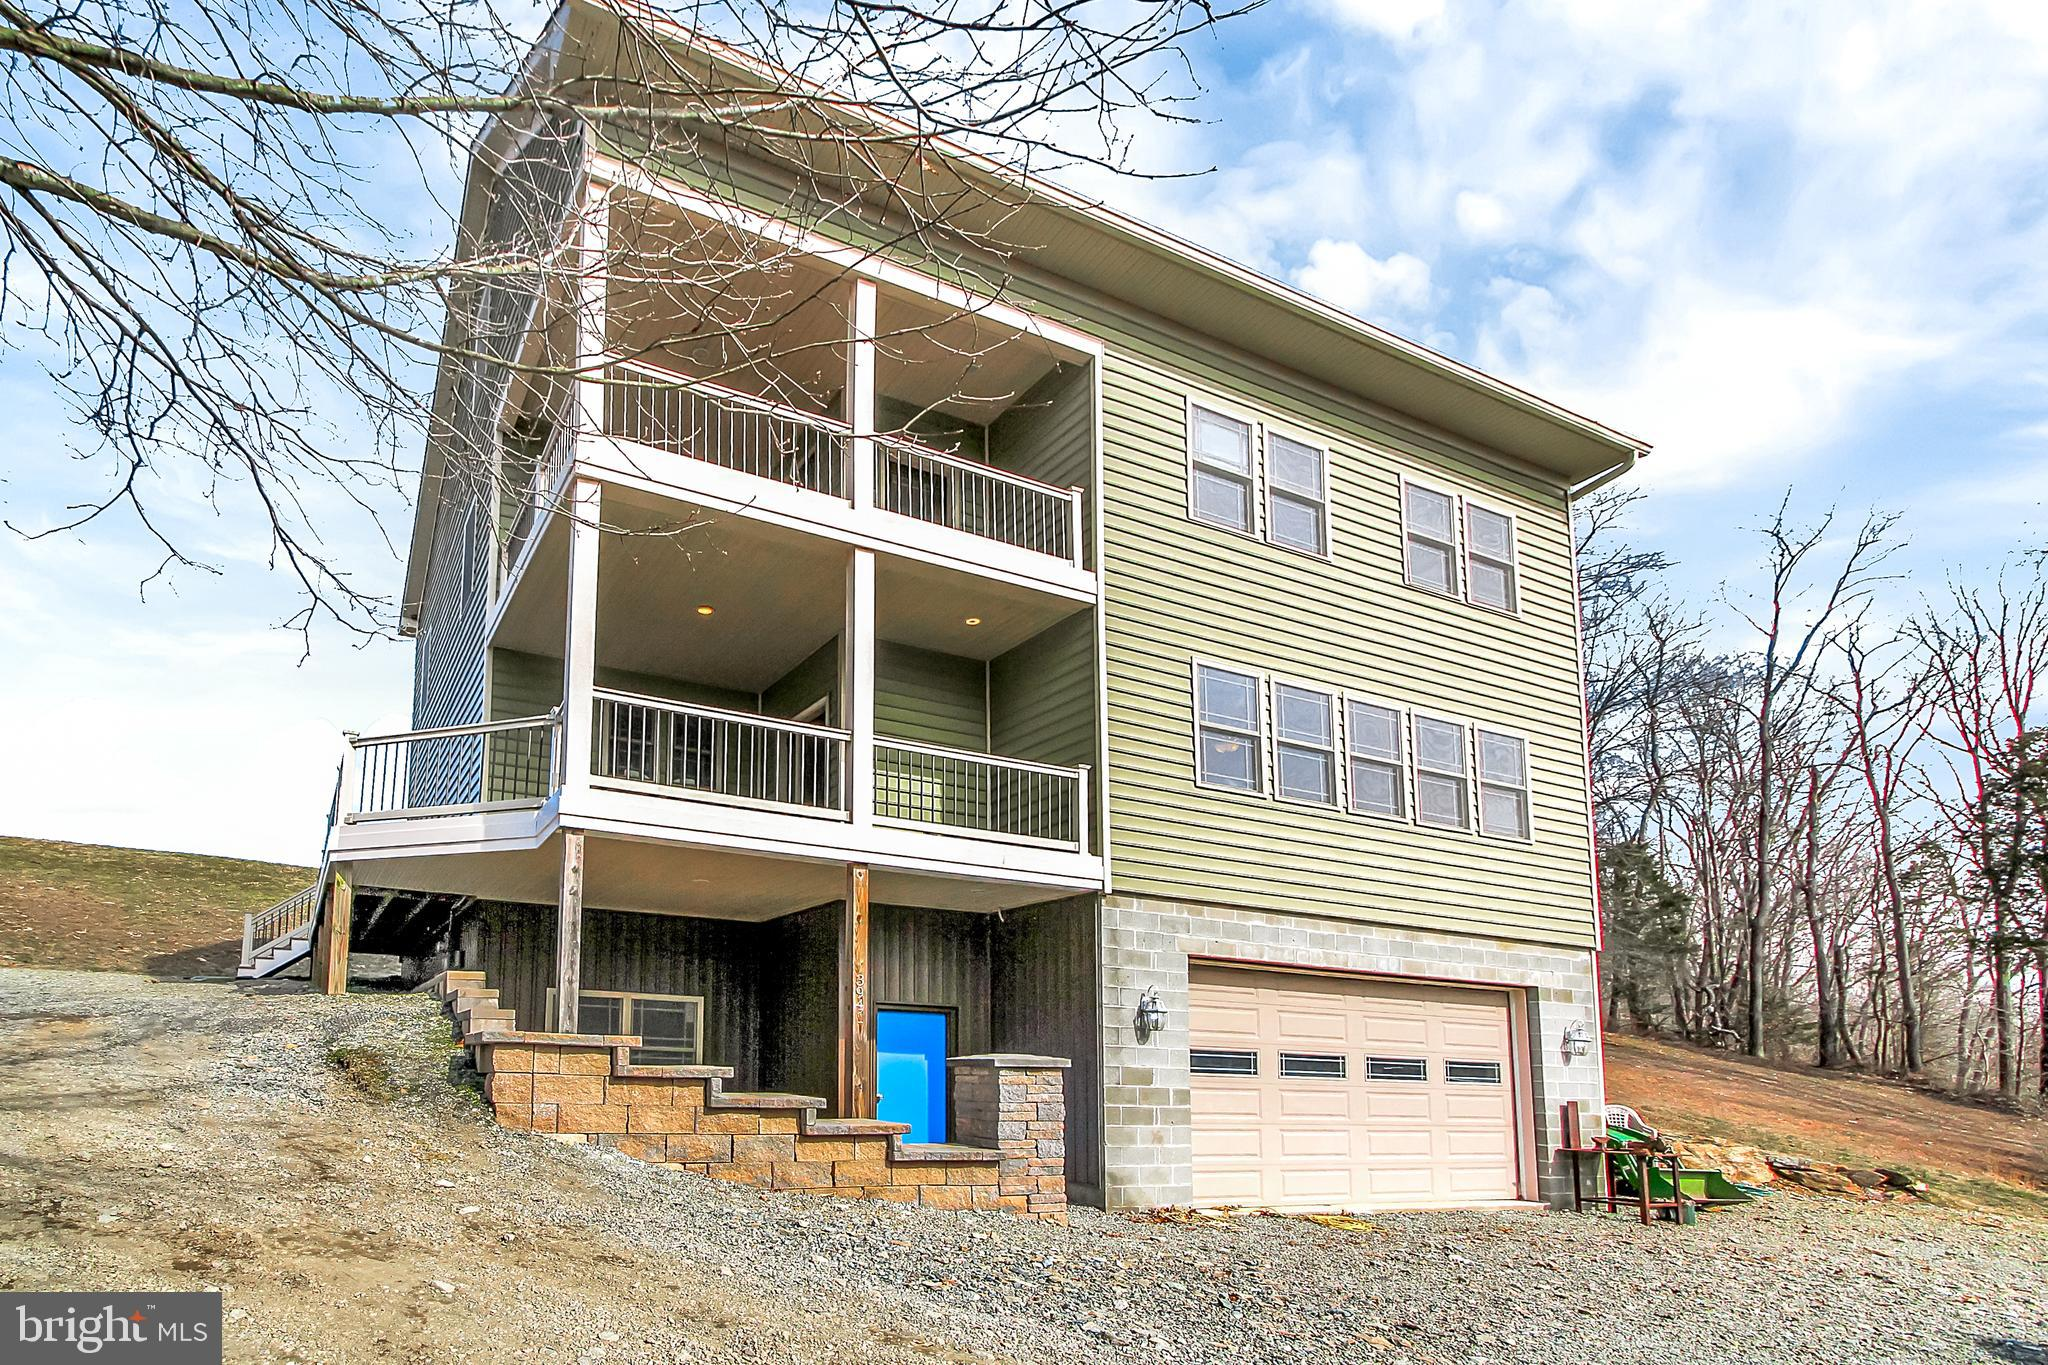 3941 TABERNACLE ROAD, WHITEFORD, MD 21160